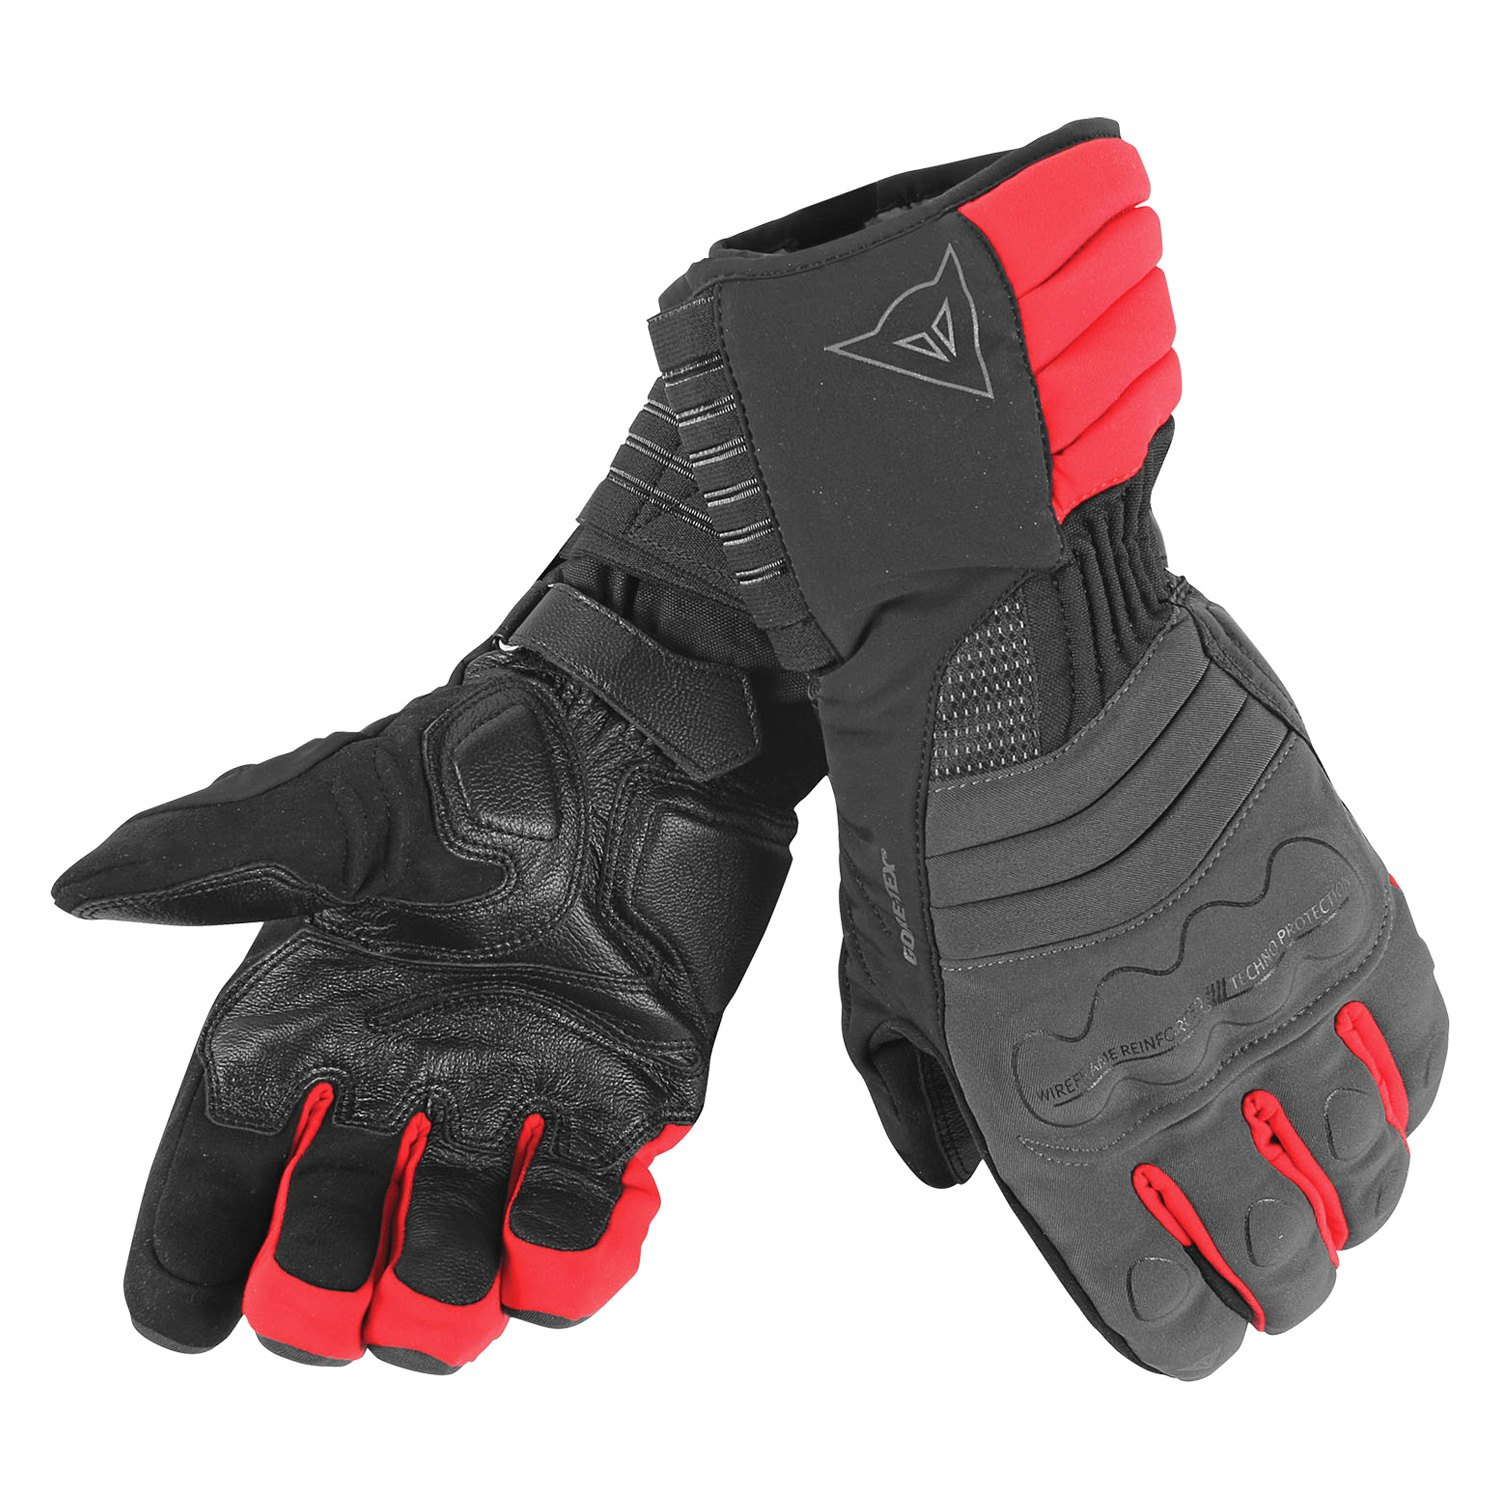 dainese scout evo gore tex gloves review